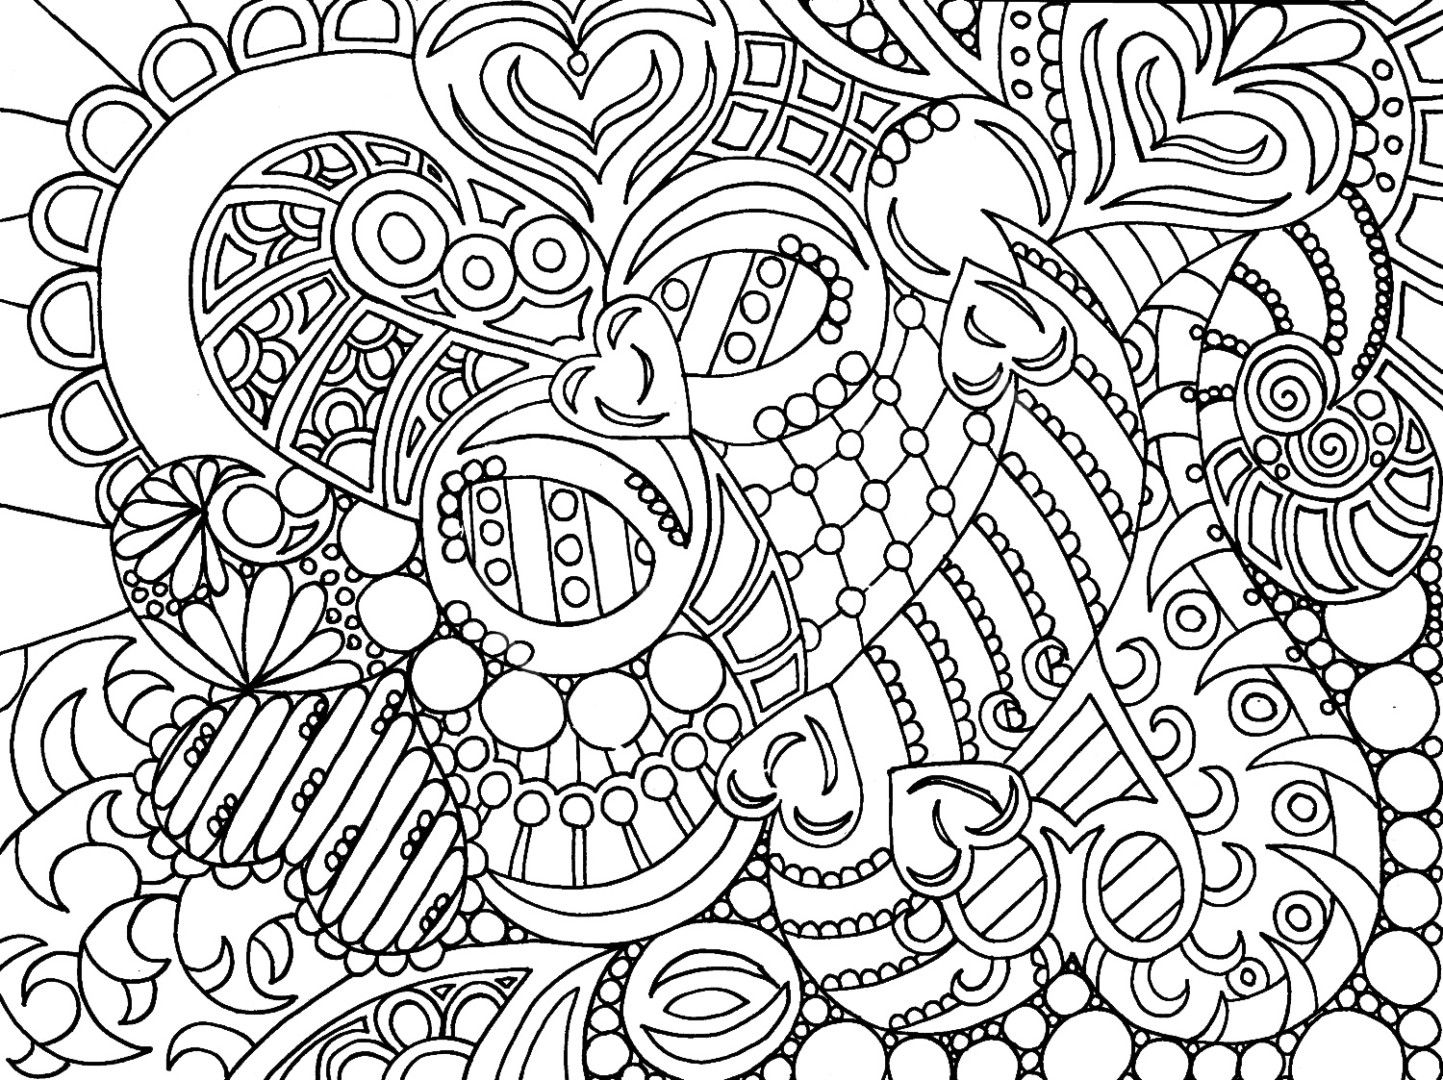 free printable coloring pages for adults advanced | Just Colorings ...